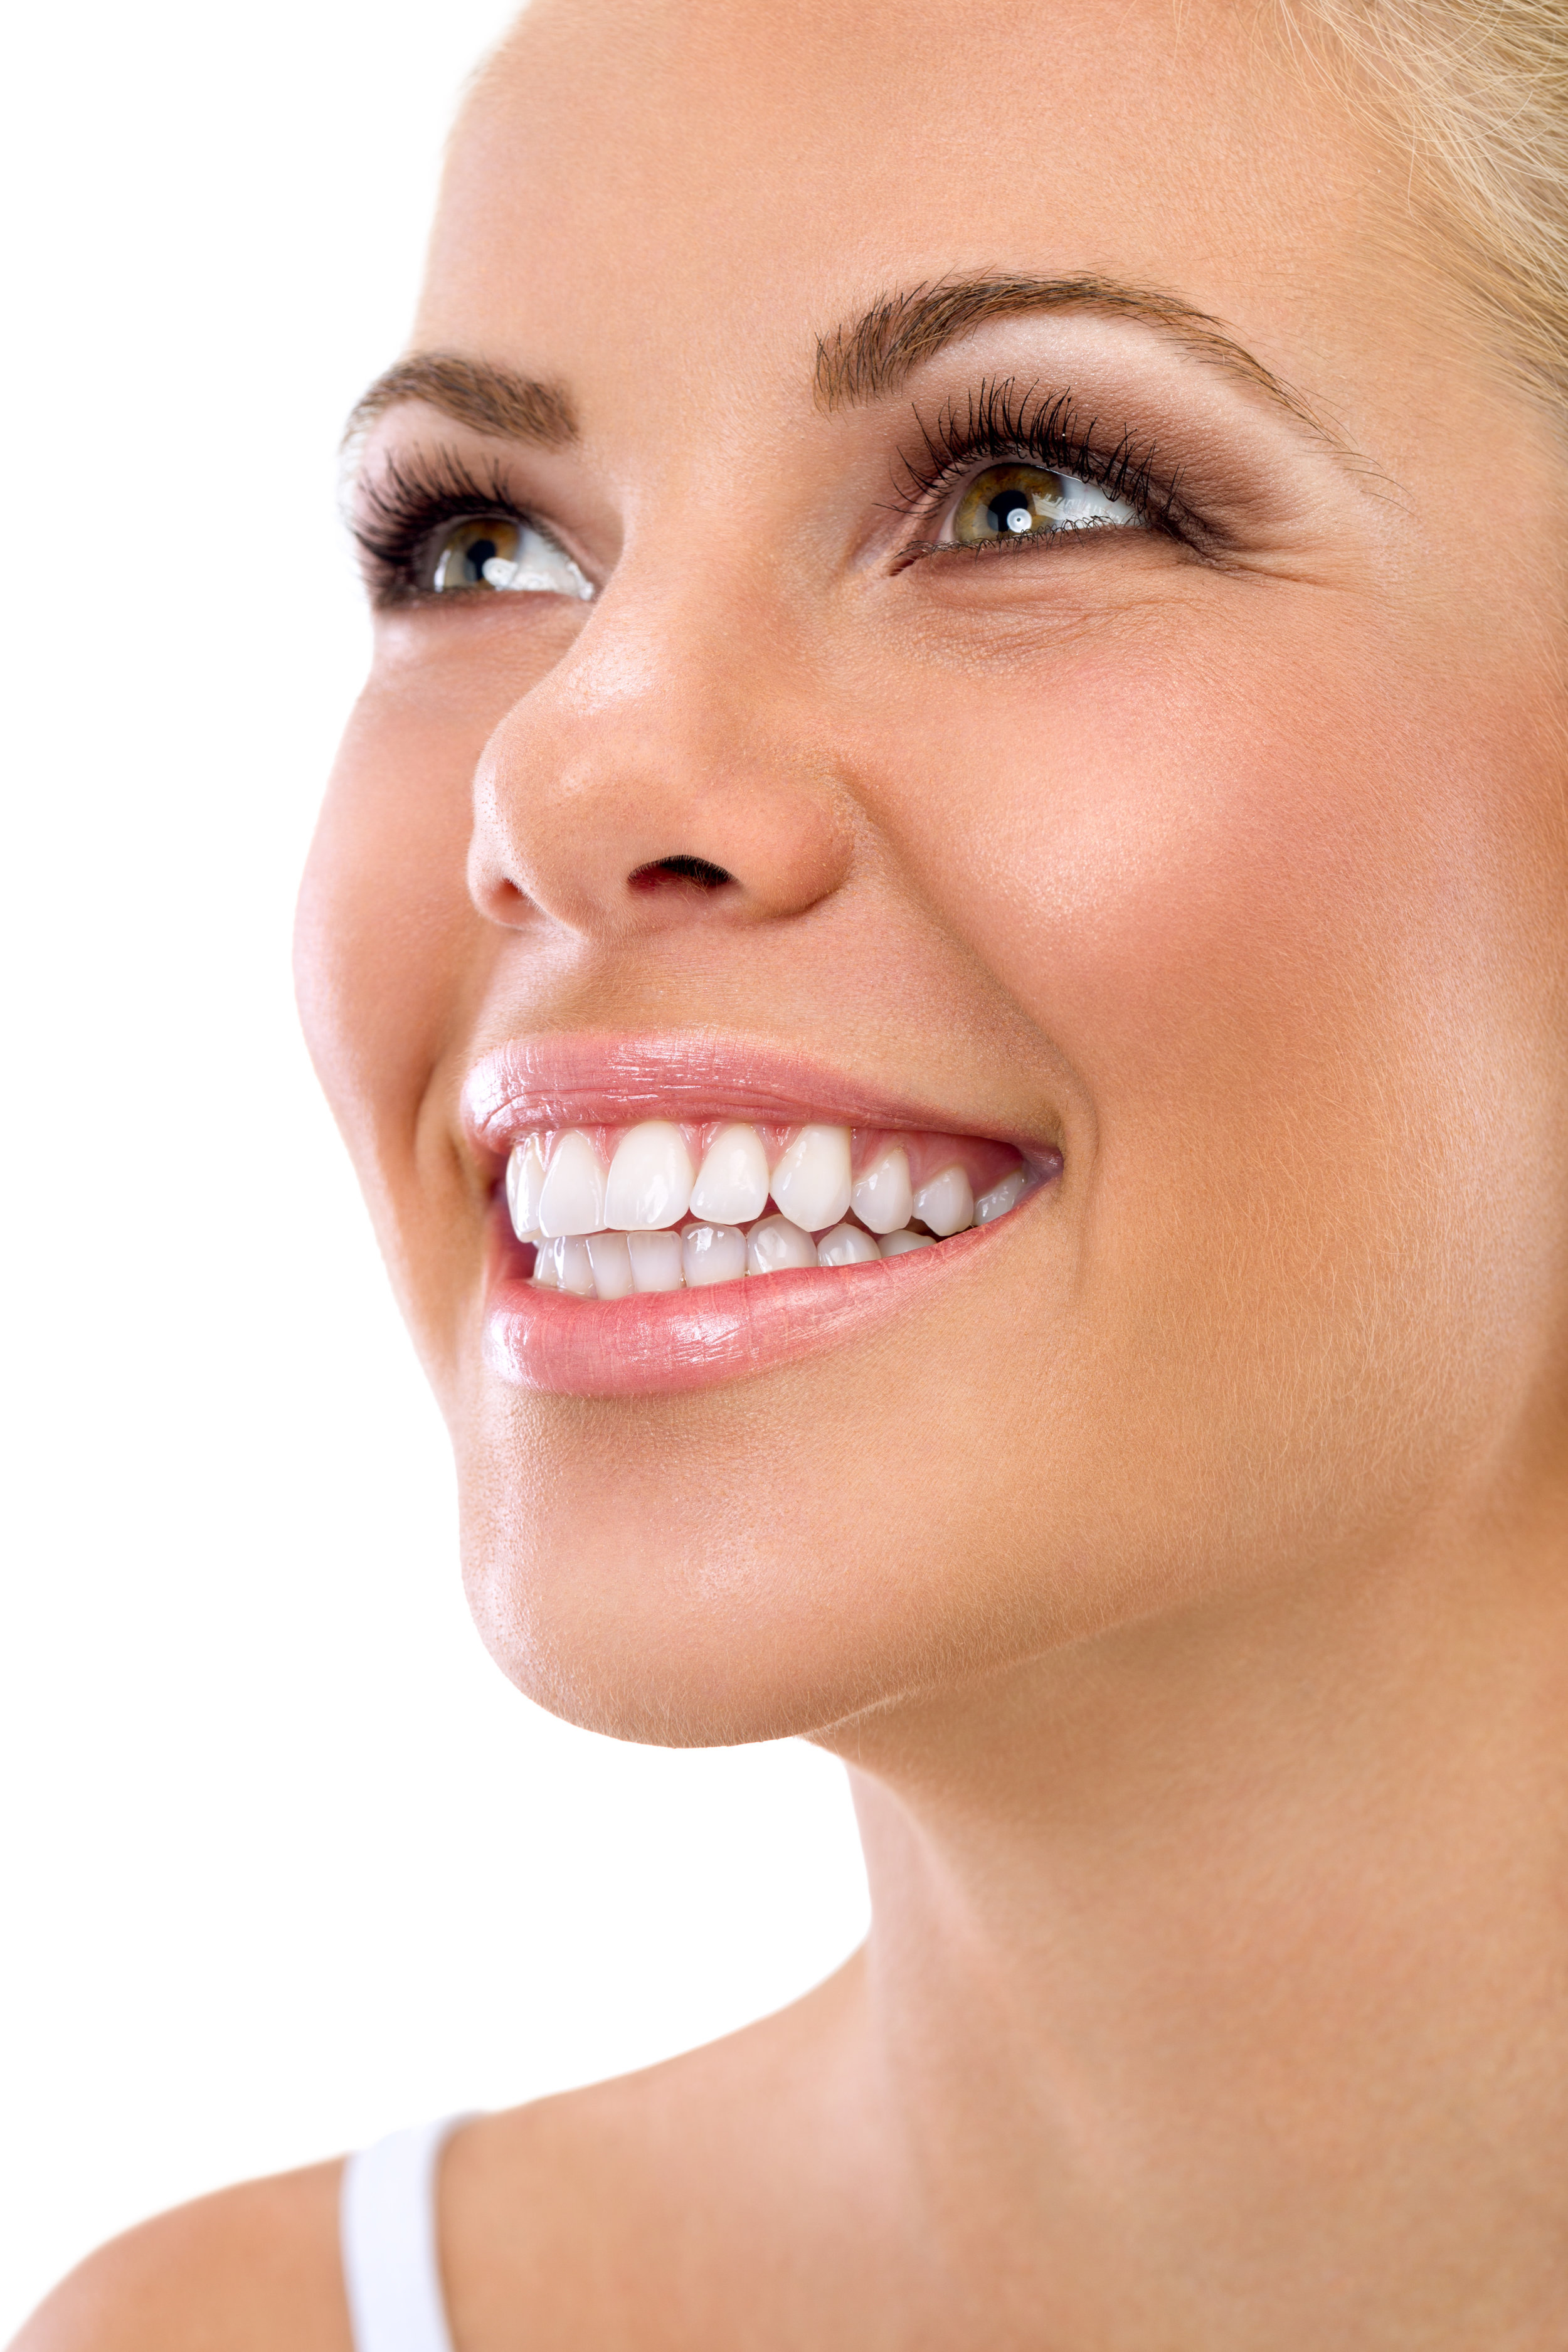 Woman Smiling with Porcelain Veneers from Eastlake Center for Implants and Restorative Dentistry